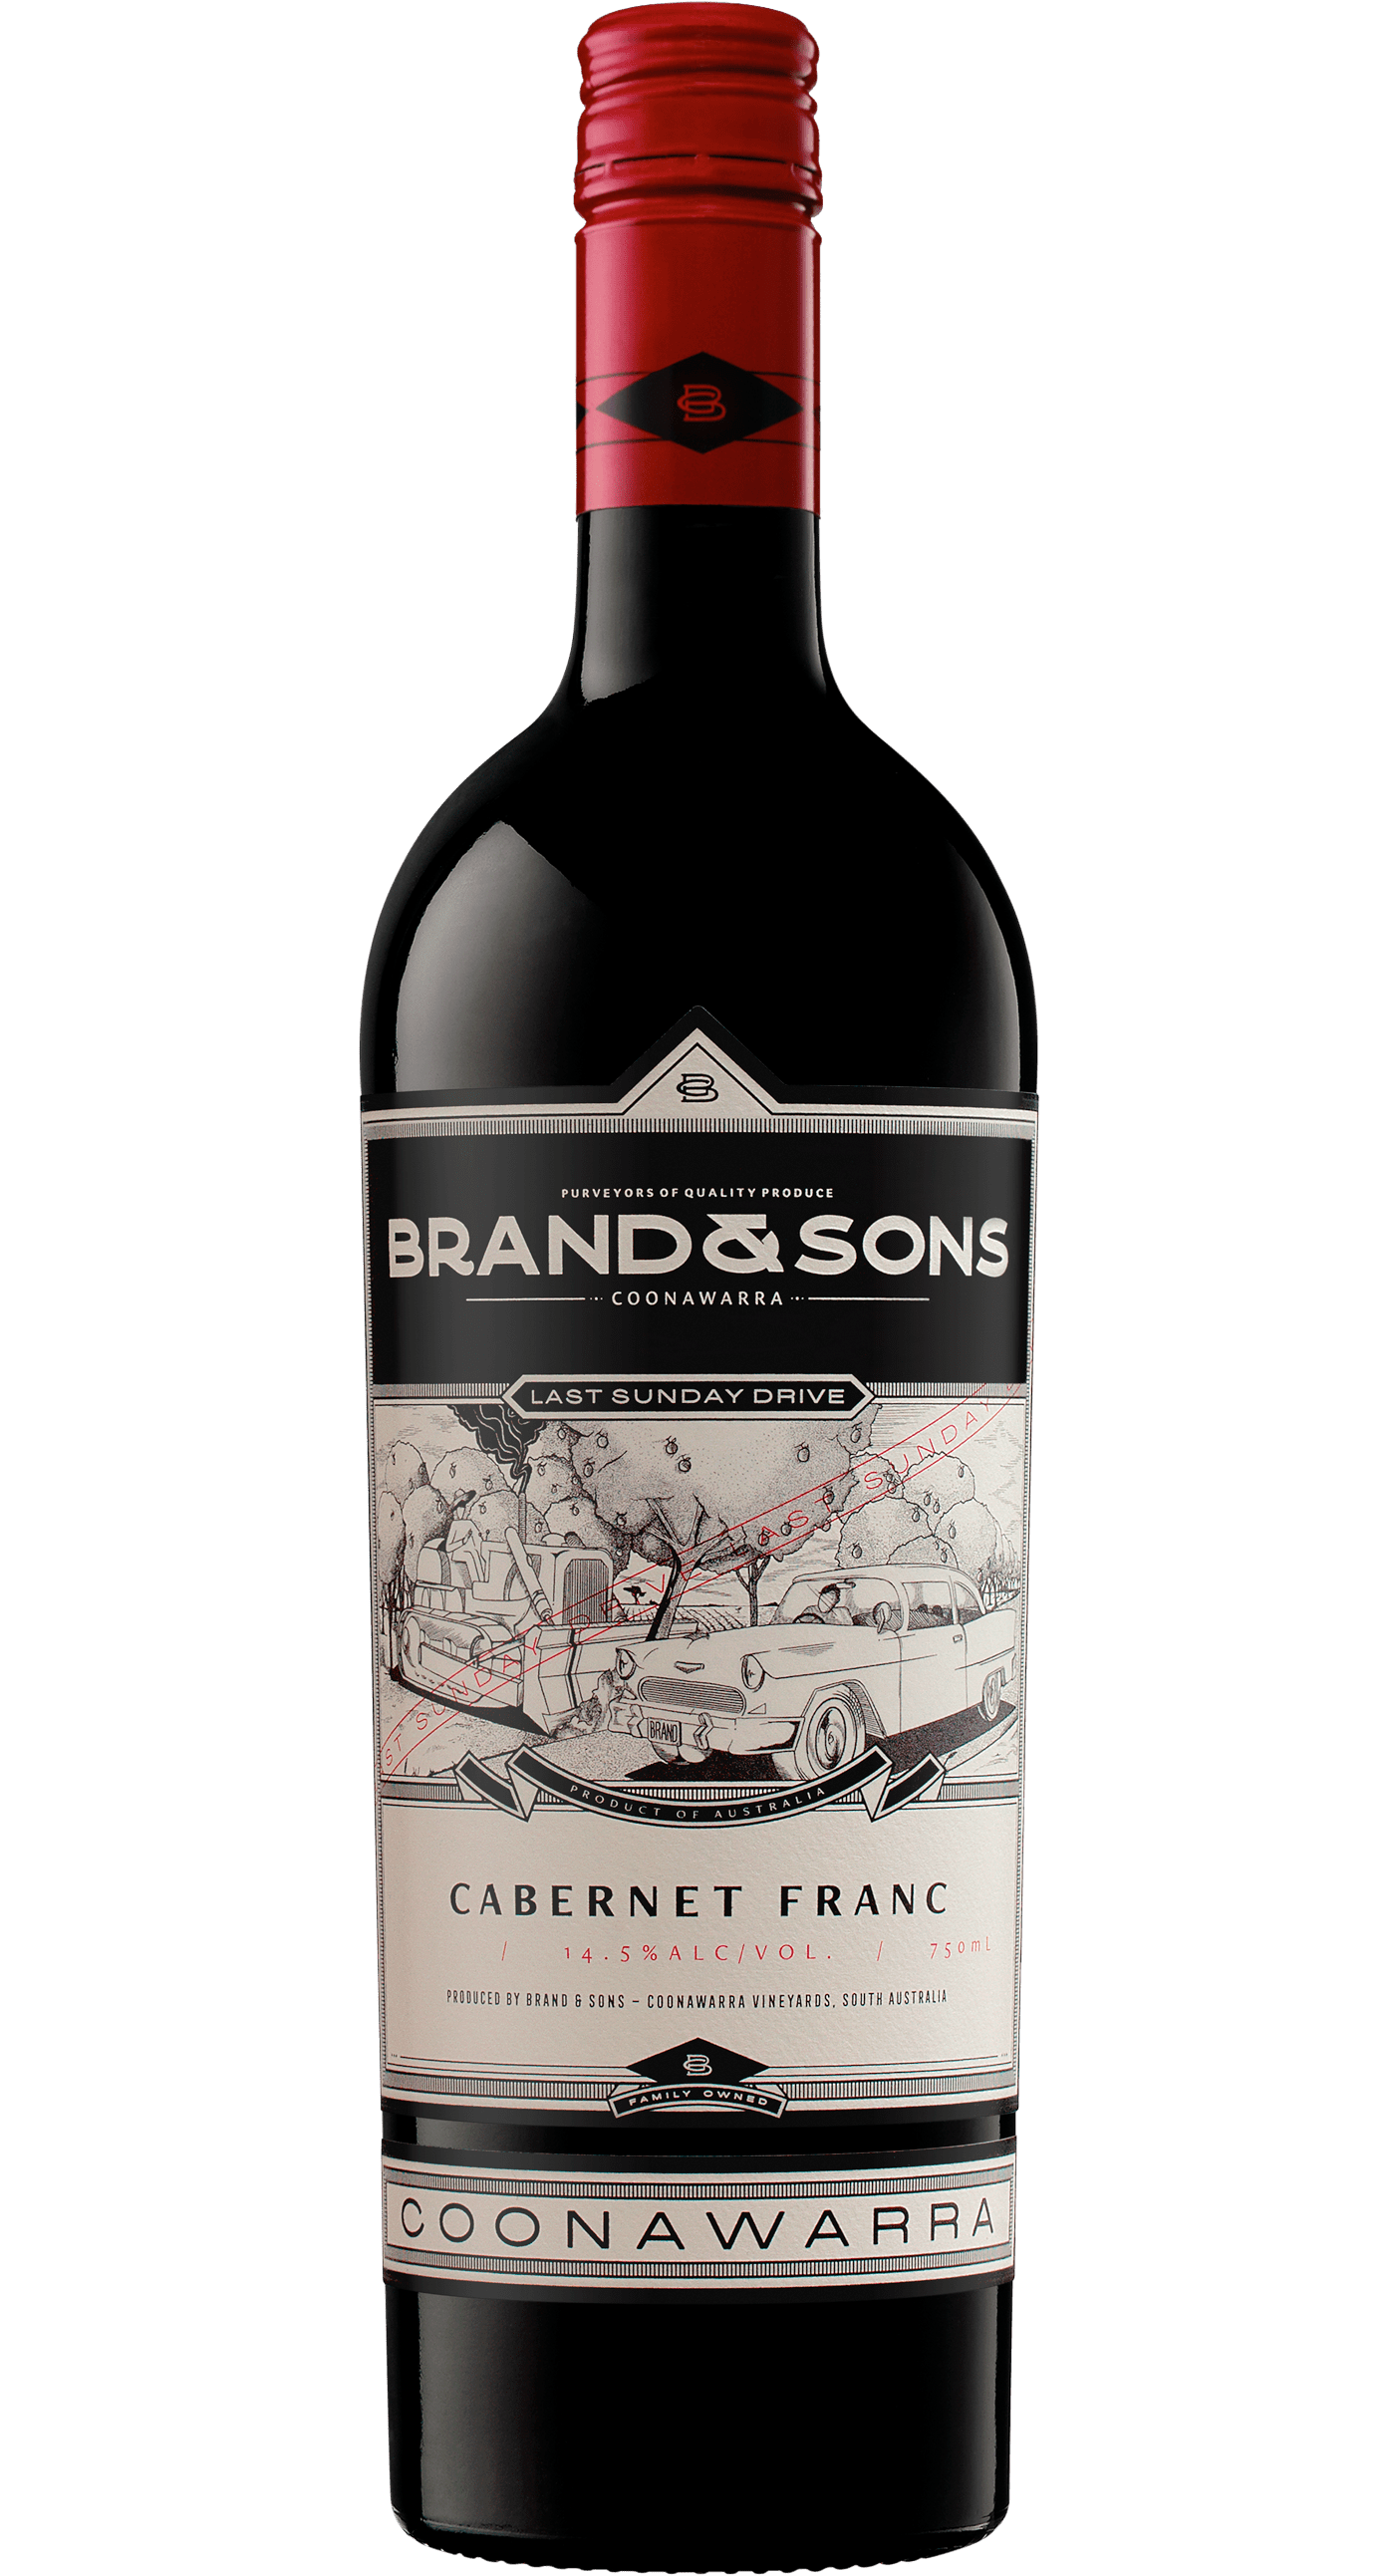 BSons-last-sunday-drive-cab-franc